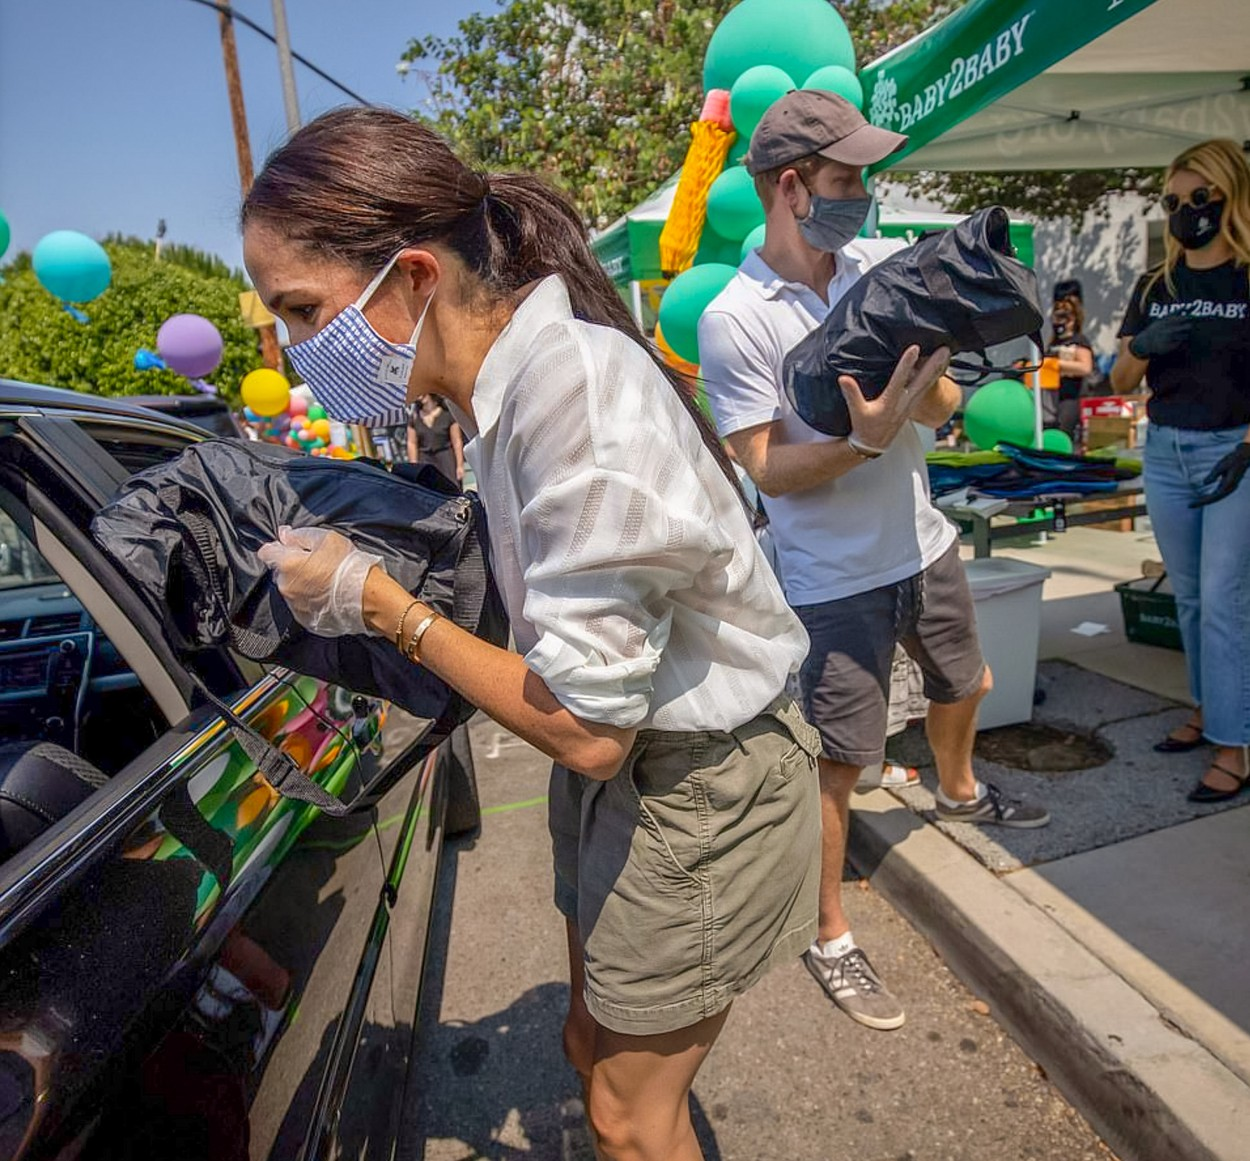 Photo © 2020: Baby2Baby via The Grosby Group  Los Angeles, August 19, 2020.  Prince Harry and Meghan Markle volunteered at a charity event to distribute supplies and clothes to families in need for back to school. The event was a drive though at Dr. Owen Lloyd Knox Elementary School in South Los Angeles and the couple gave the items to the families through the windows of the cars, while wearing masks and gloves. The event was organized by the charity organization, Baby2Baby.   DISCLAIMER:  Please note: The Grosby Group does not claim any ownership including but not limited to Copyright or License in the attached material. Fees charged by The Grosby Group are for The Grosby Group's services only, and do not, nor are they intended to, convey to the user any ownership of Copyright or License in the material. By publishing this material you expressly agree to indemnify and to hold The Grosby Group and its directors, shareholders and employees harmless from any loss, claims, damages, demands, expenses (including legal fees), or any causes of action or allegation against The Grosby Group arising out of or connected in any way with publication of the material.,Image: 554377297, License: Rights-managed, Restrictions: , Model Release: no, Credit line: Baby2Baby via The Grosby Group / Grosby Group / Profimedia